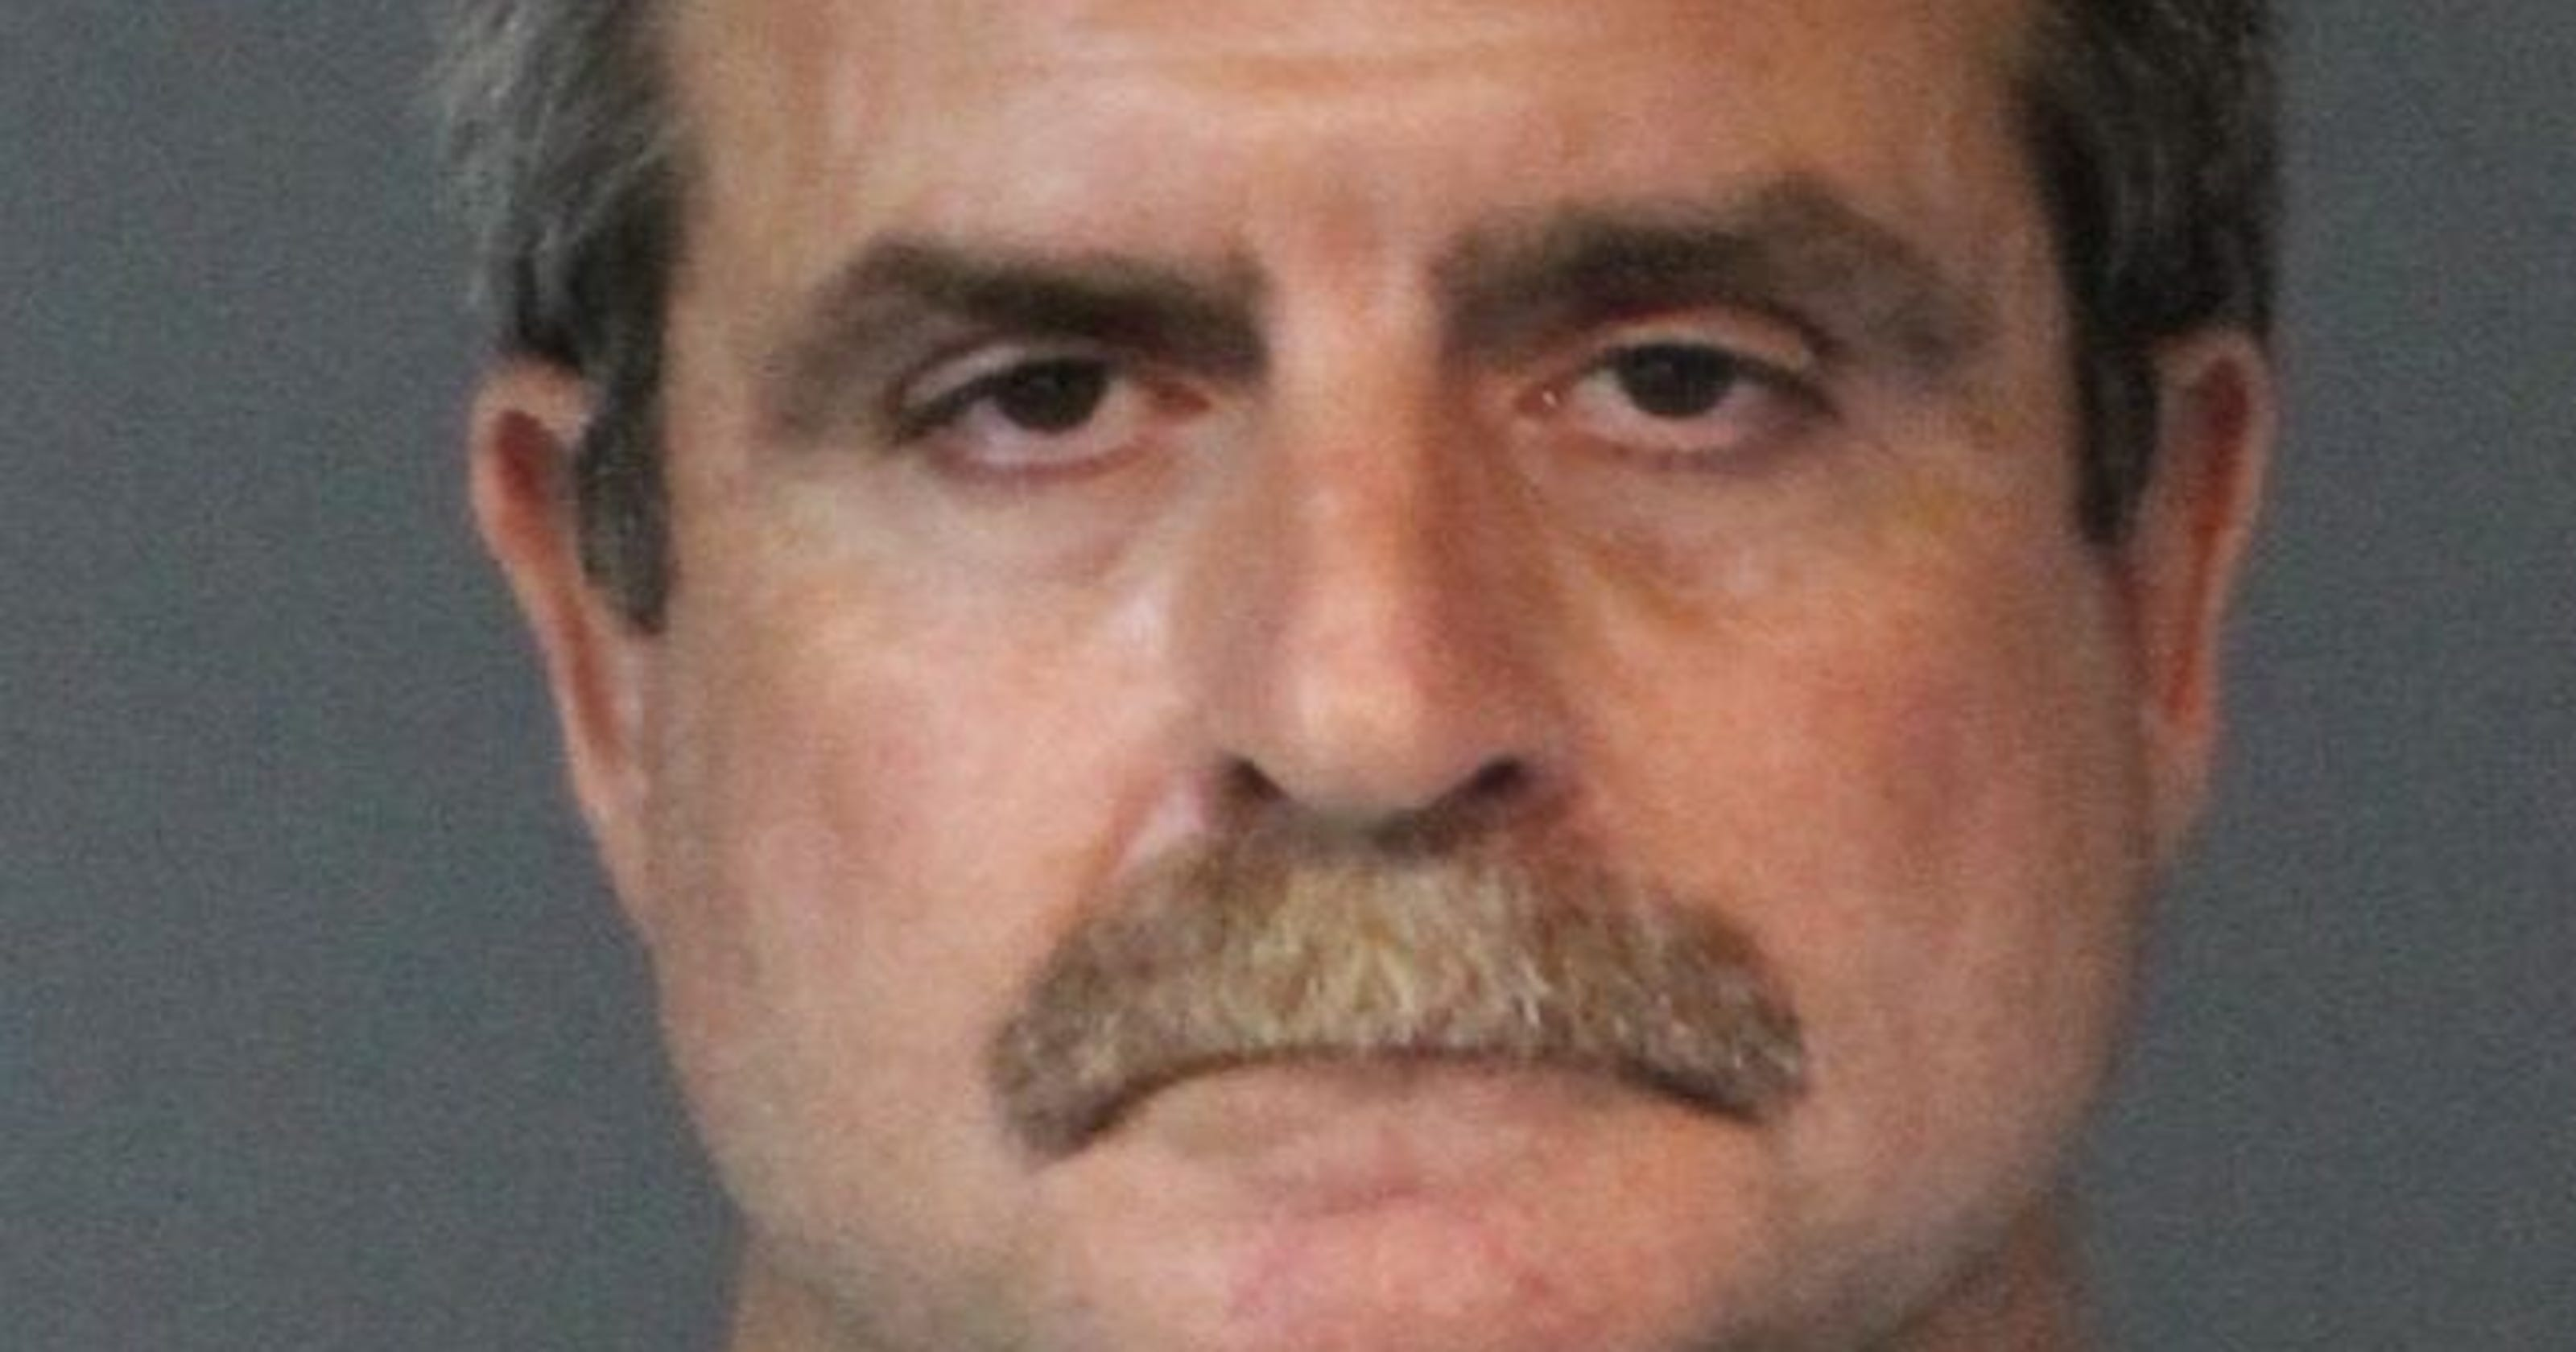 Reno man sent to 55 years in prison for stabbing man in his